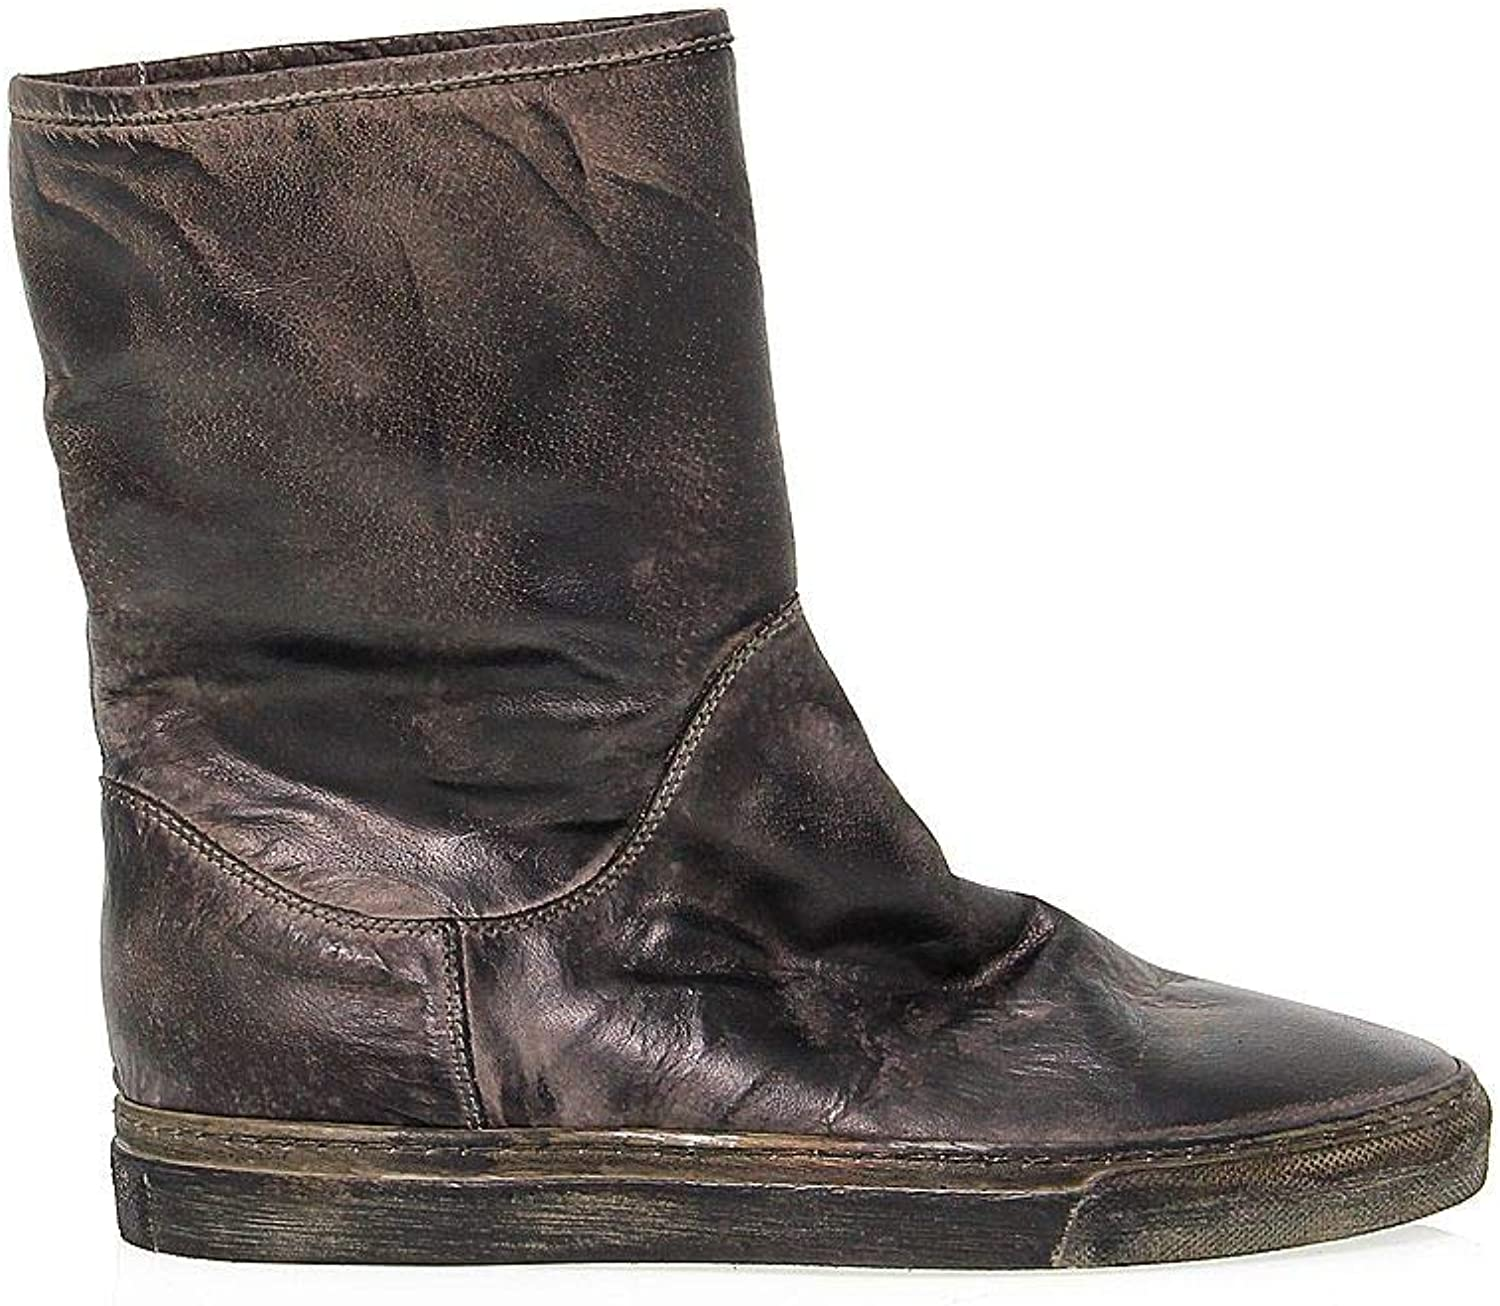 SAN CRISPINO Women's 137BROWN Grey Leather Ankle Boots